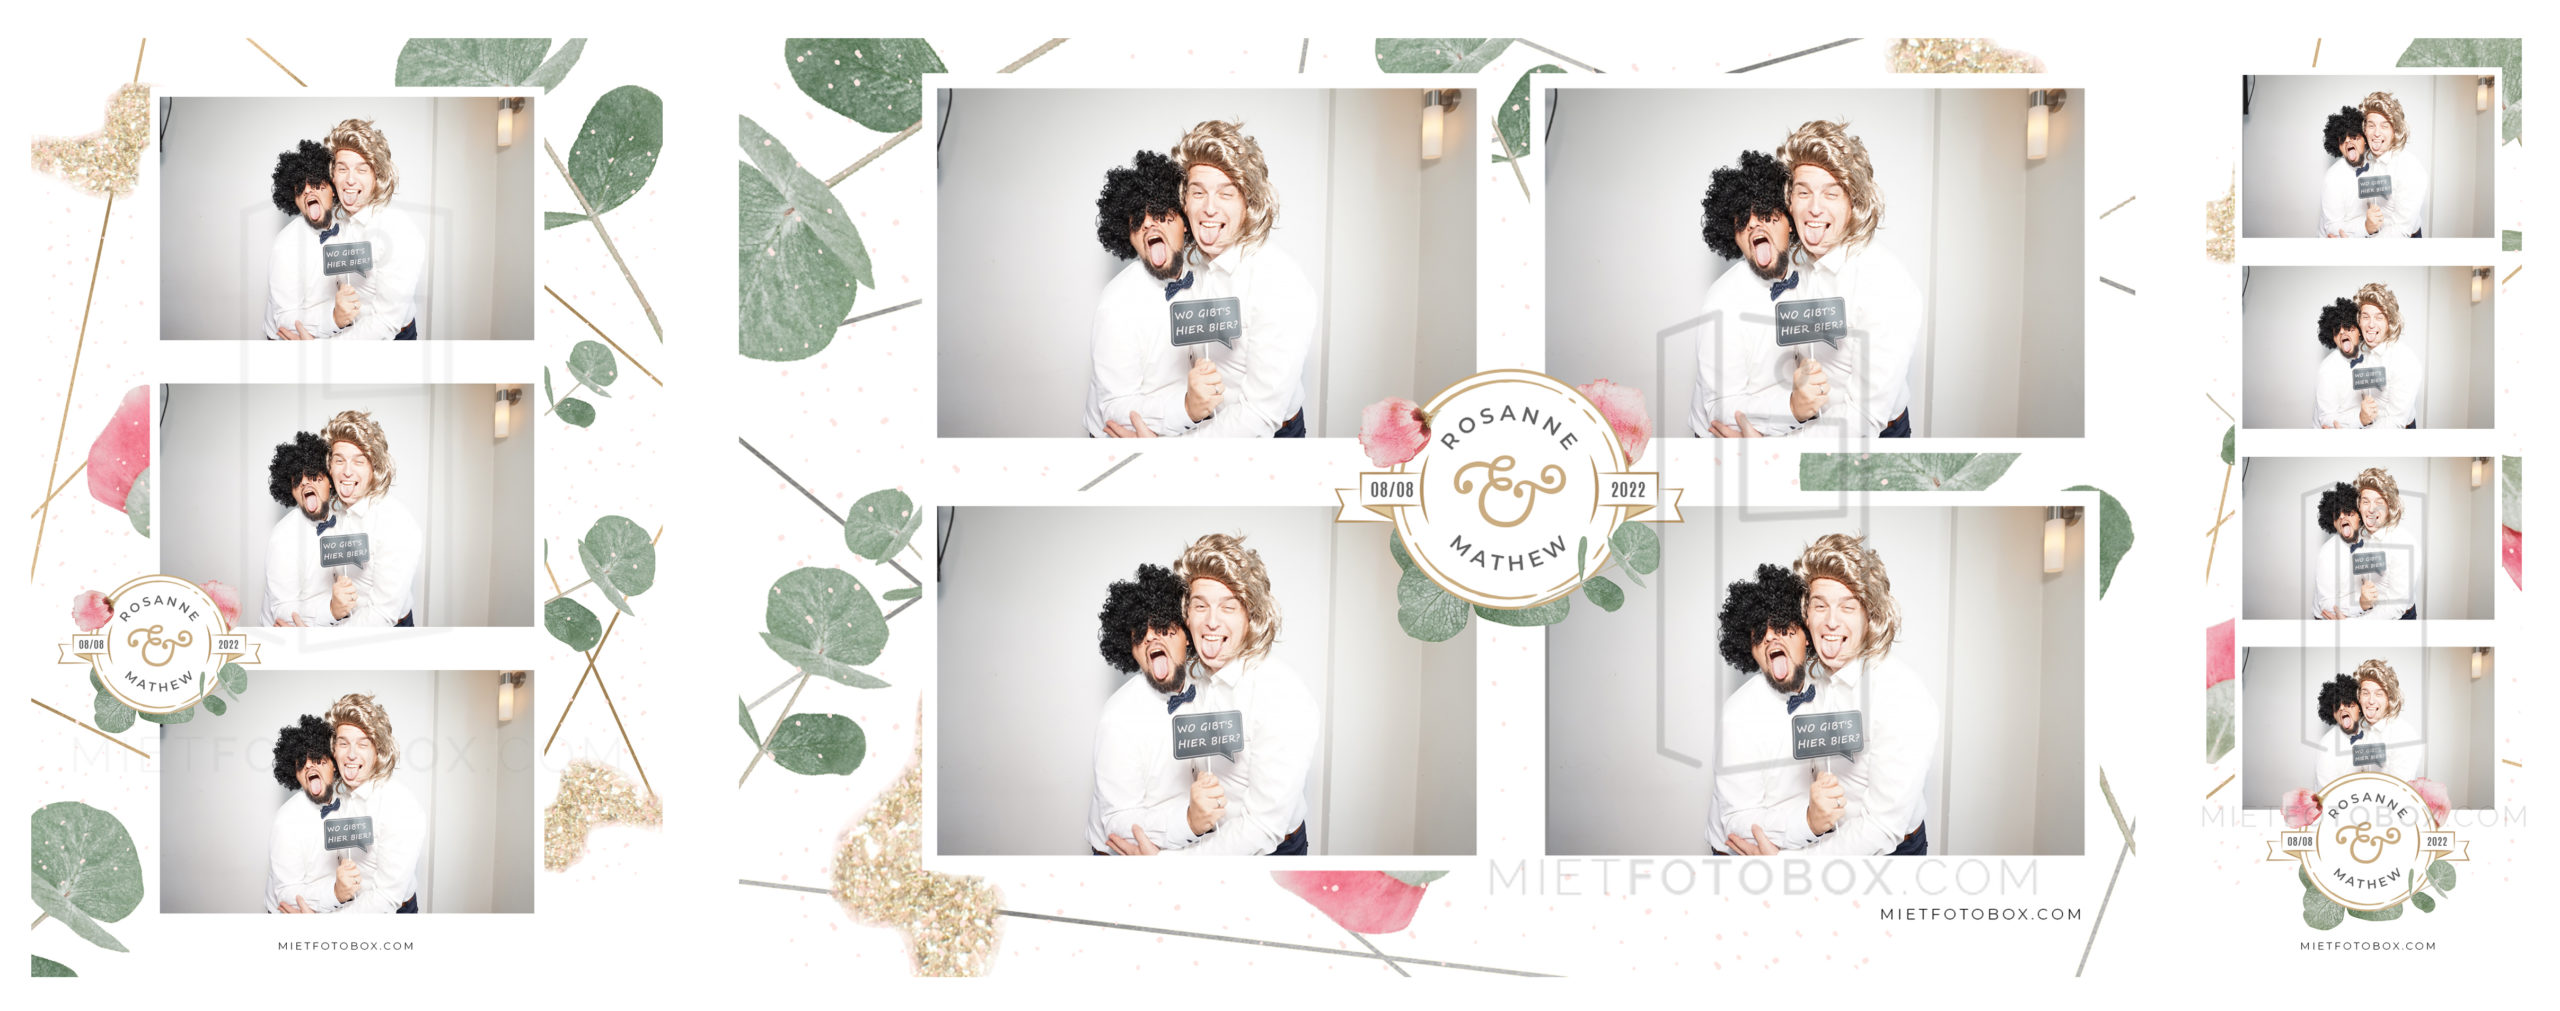 Fotobox-Layout-016